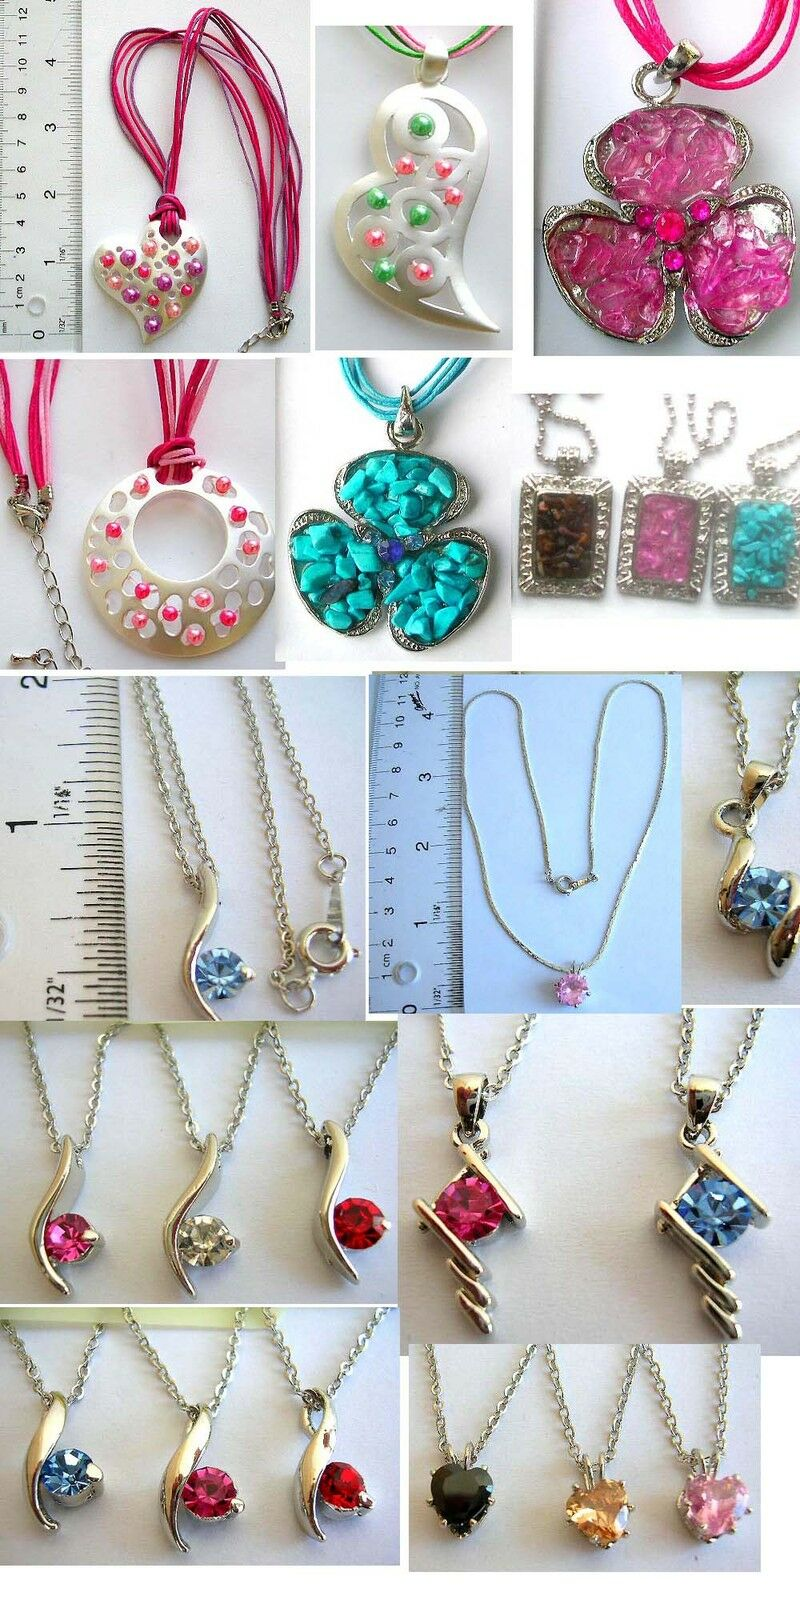 US SELLER 50 centsper necklace lot of 100 necklaces wholesale jewelry lot